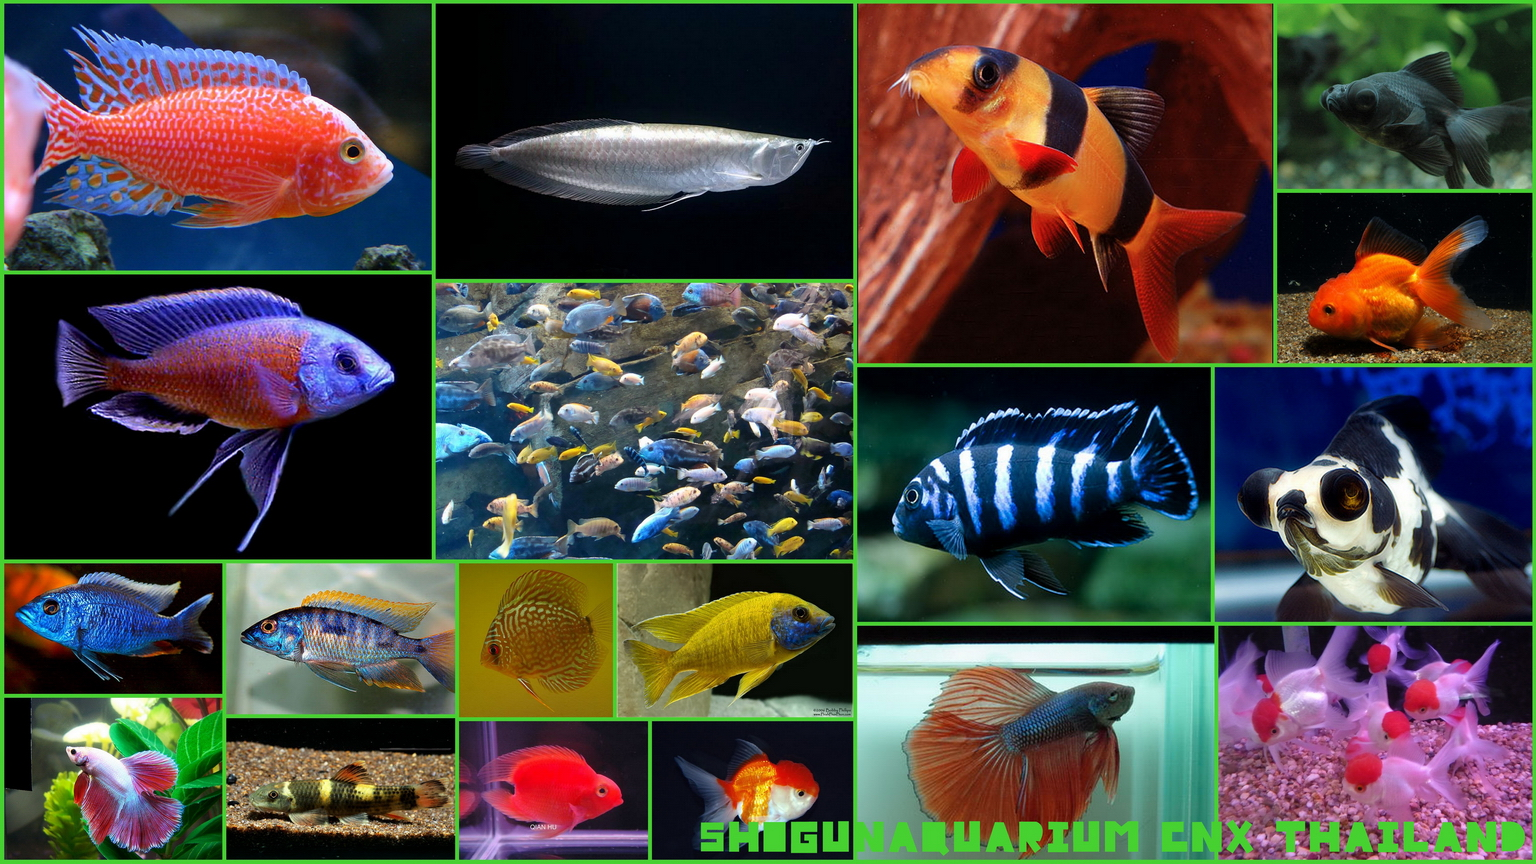 Shogunaquarium new arrival the list of fish 20 04 12 for 7 fishes list